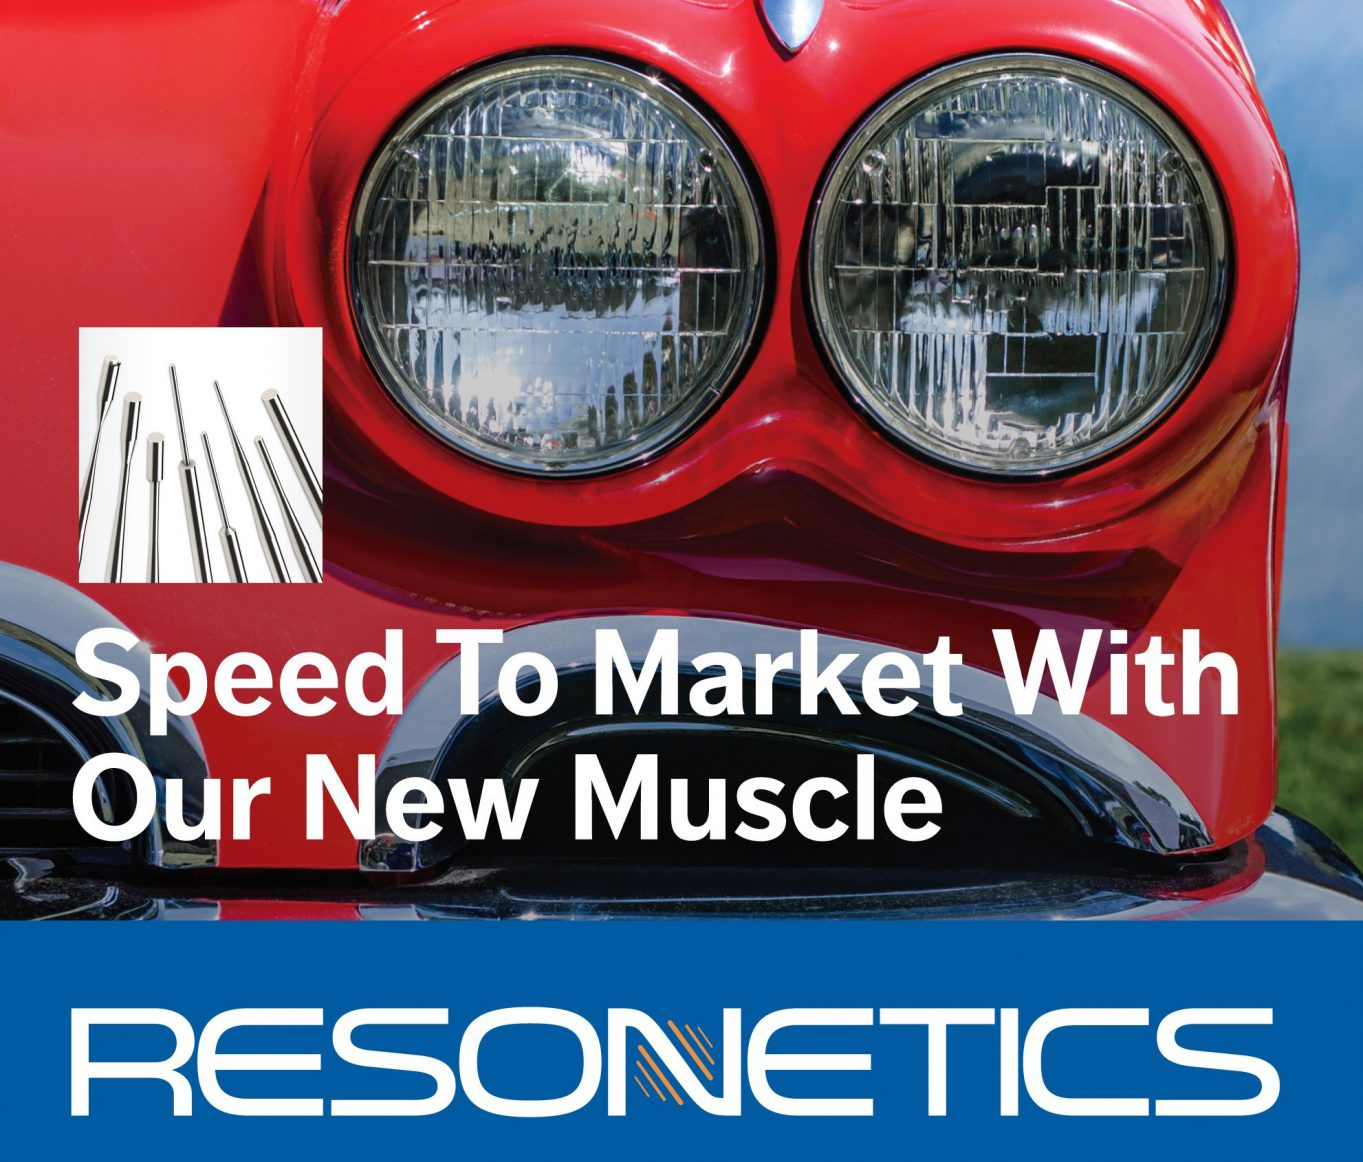 speed to market with our new muscle